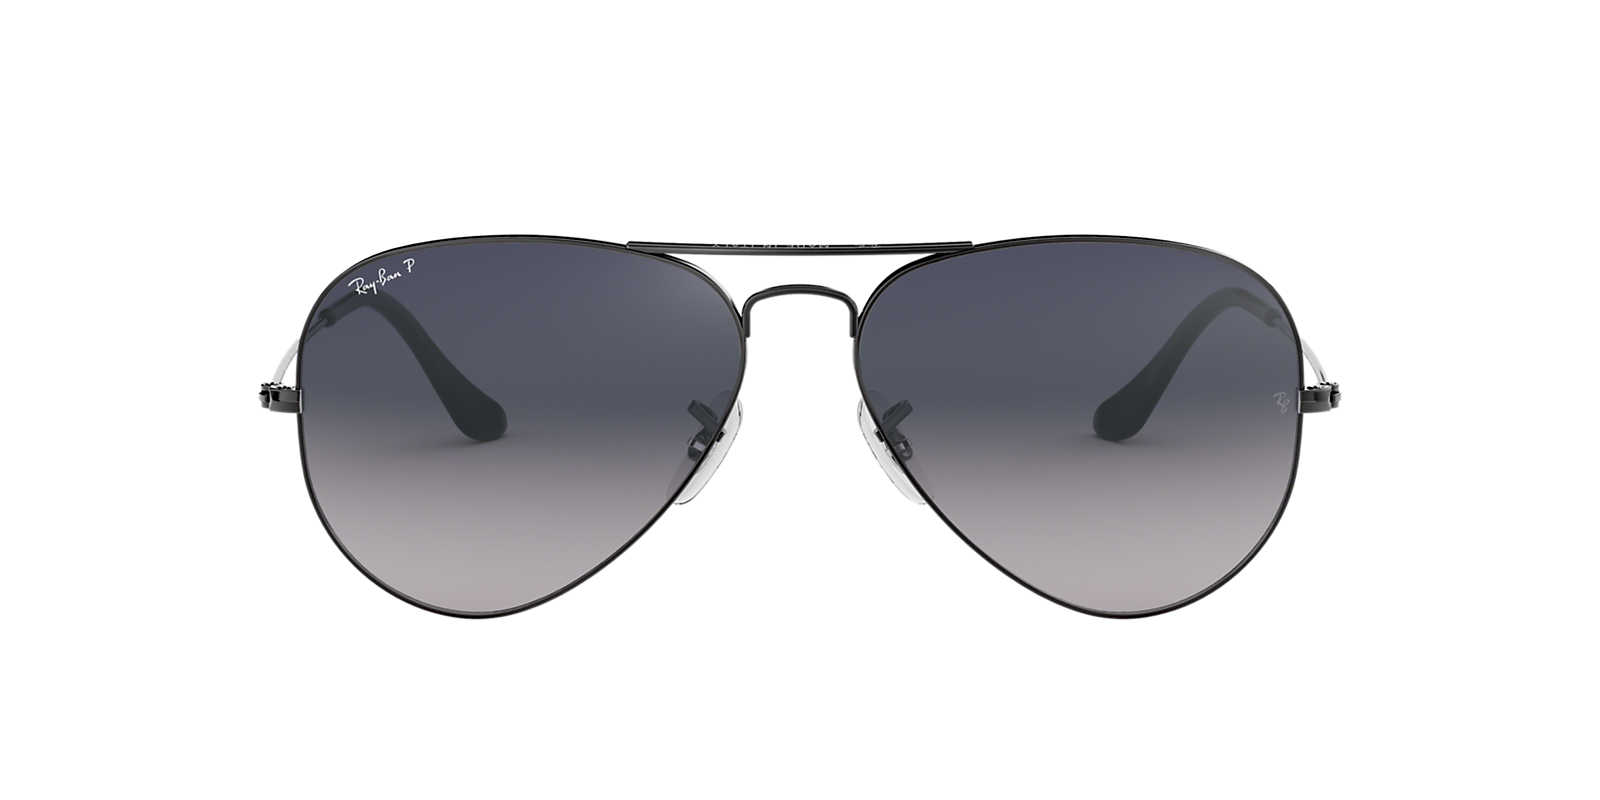 official ray ban sunglasses  Ray-Ban Sunglasses